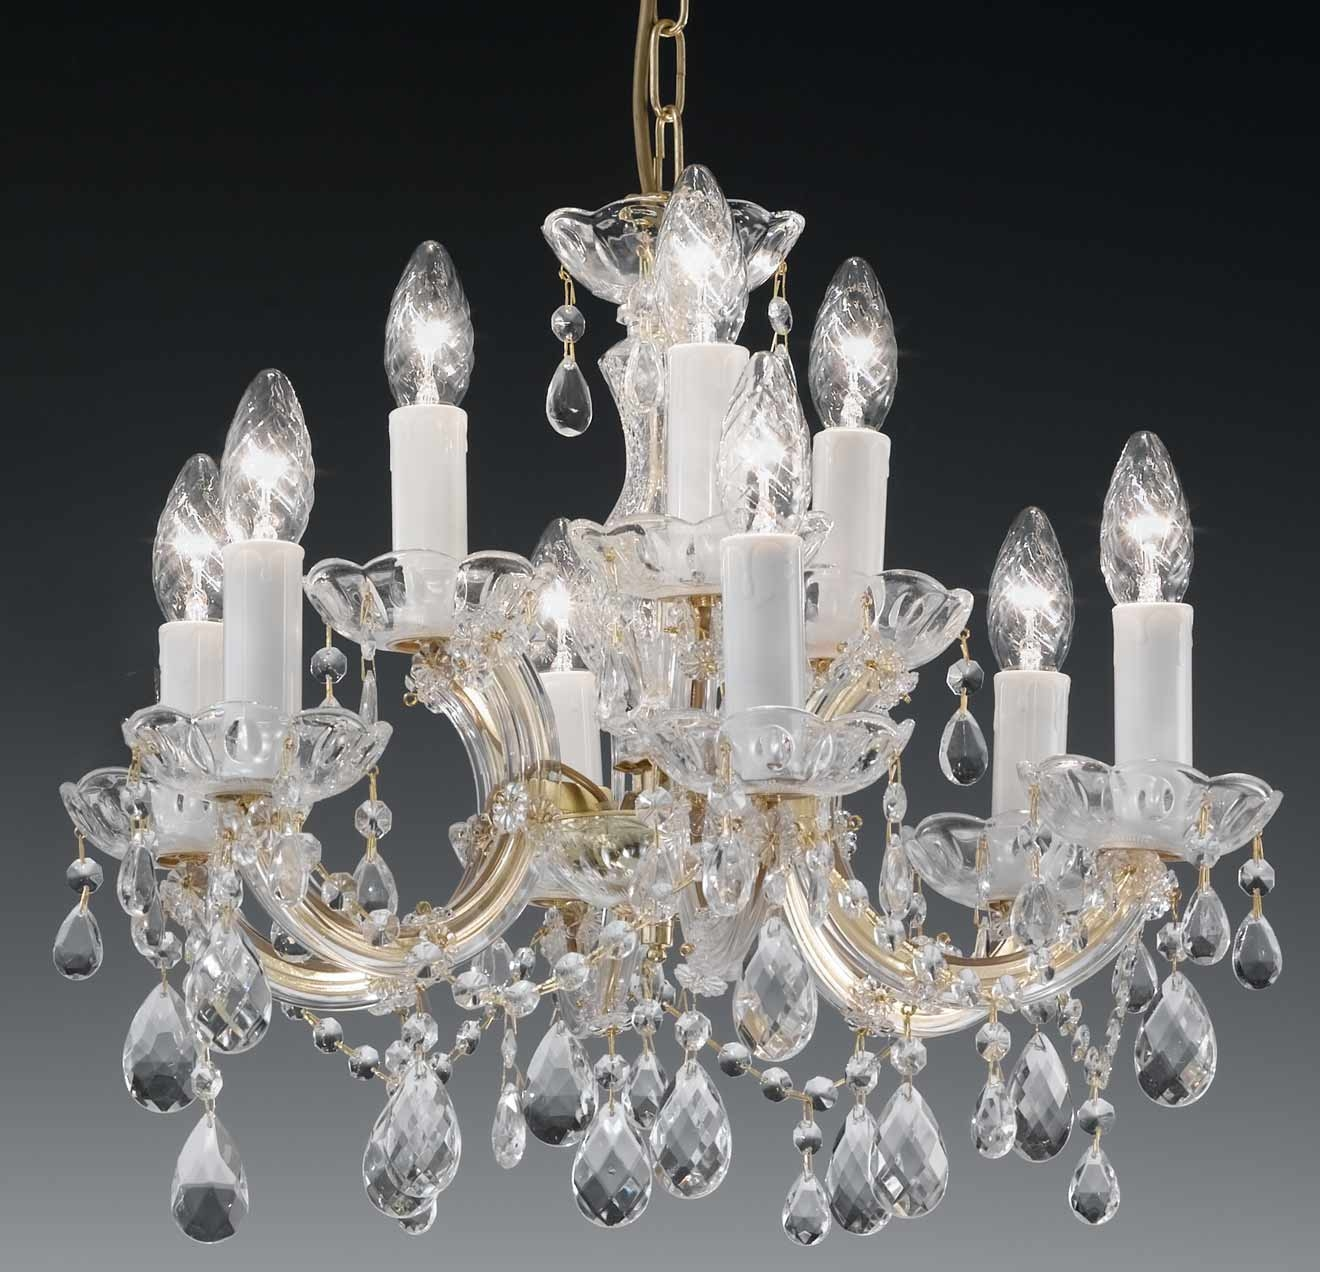 Decorating Ideas Cool Picture Of Luxury Round White Crystal Glass Throughout Italian Chandeliers (Image 4 of 15)